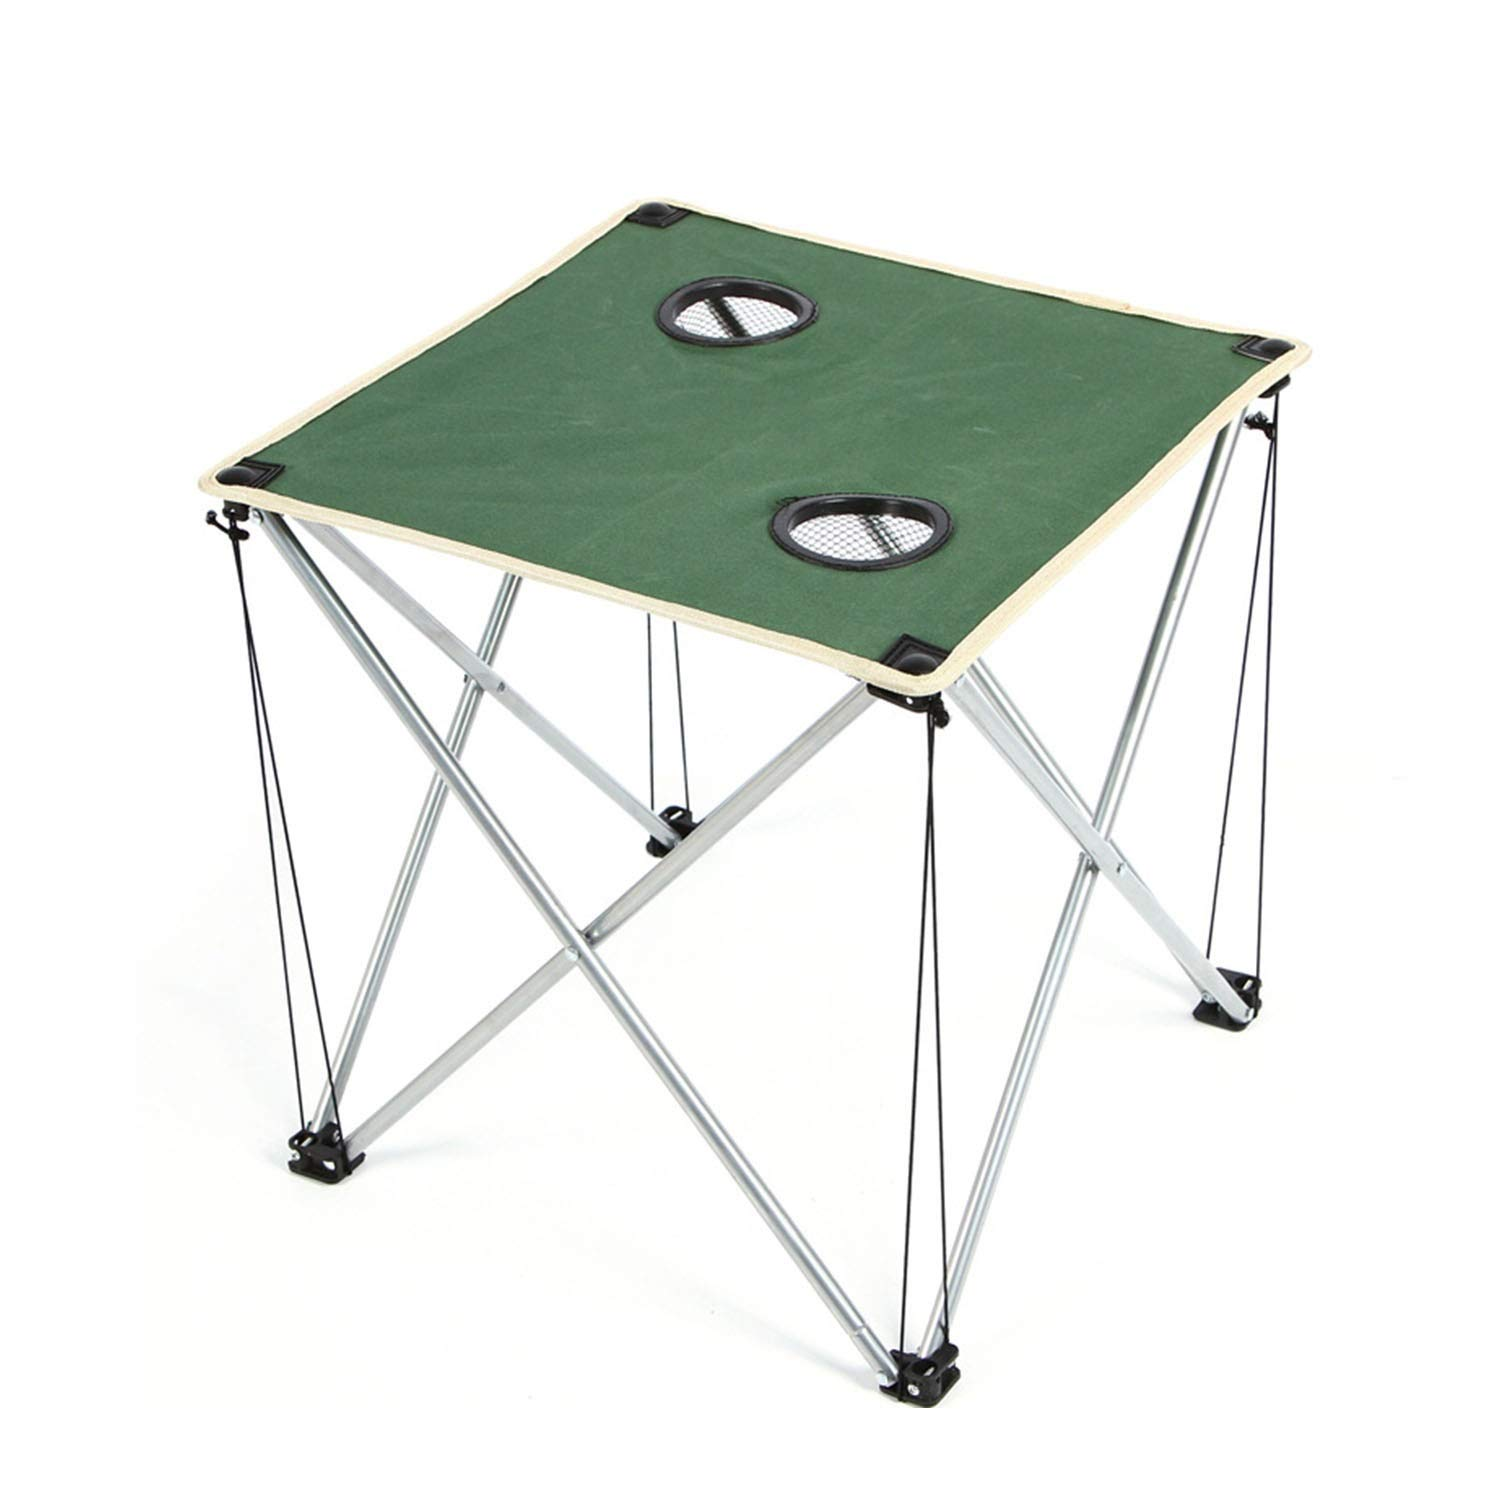 YOZOOE Oxford Cloth Coffee Table, Thicken Outdoor Folding Table, Travel/Barbecue/Beach, Ultra Light Portable Camping Supplies (Color : Green) by YOZOOE